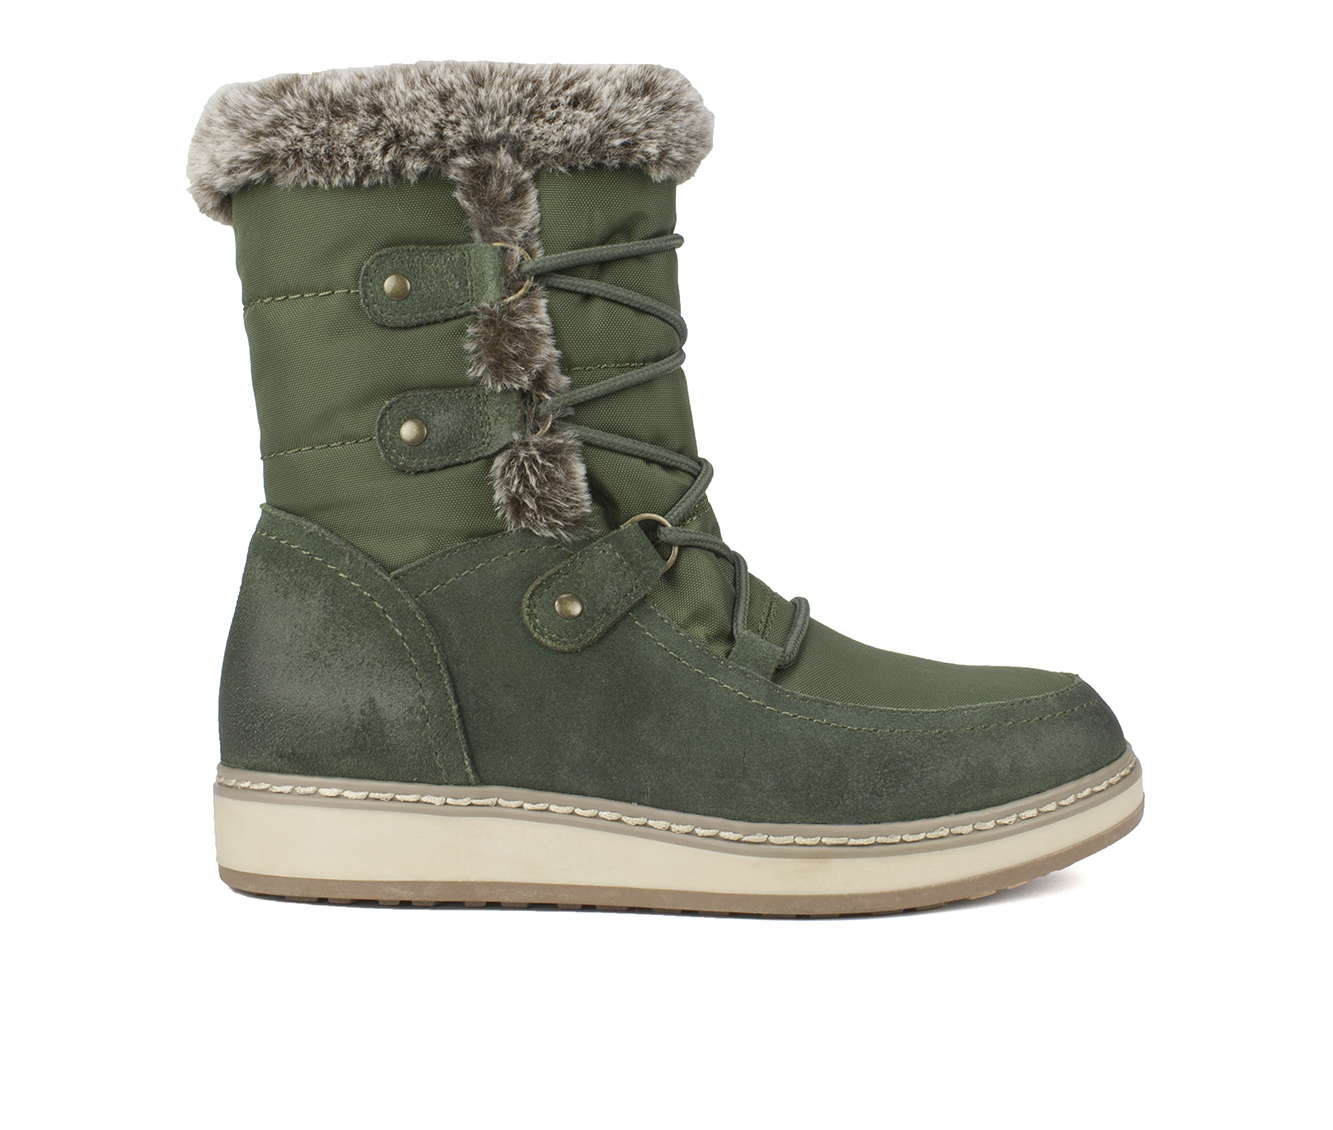 White Mountain Tansley Women's Boots (Green - Suede)